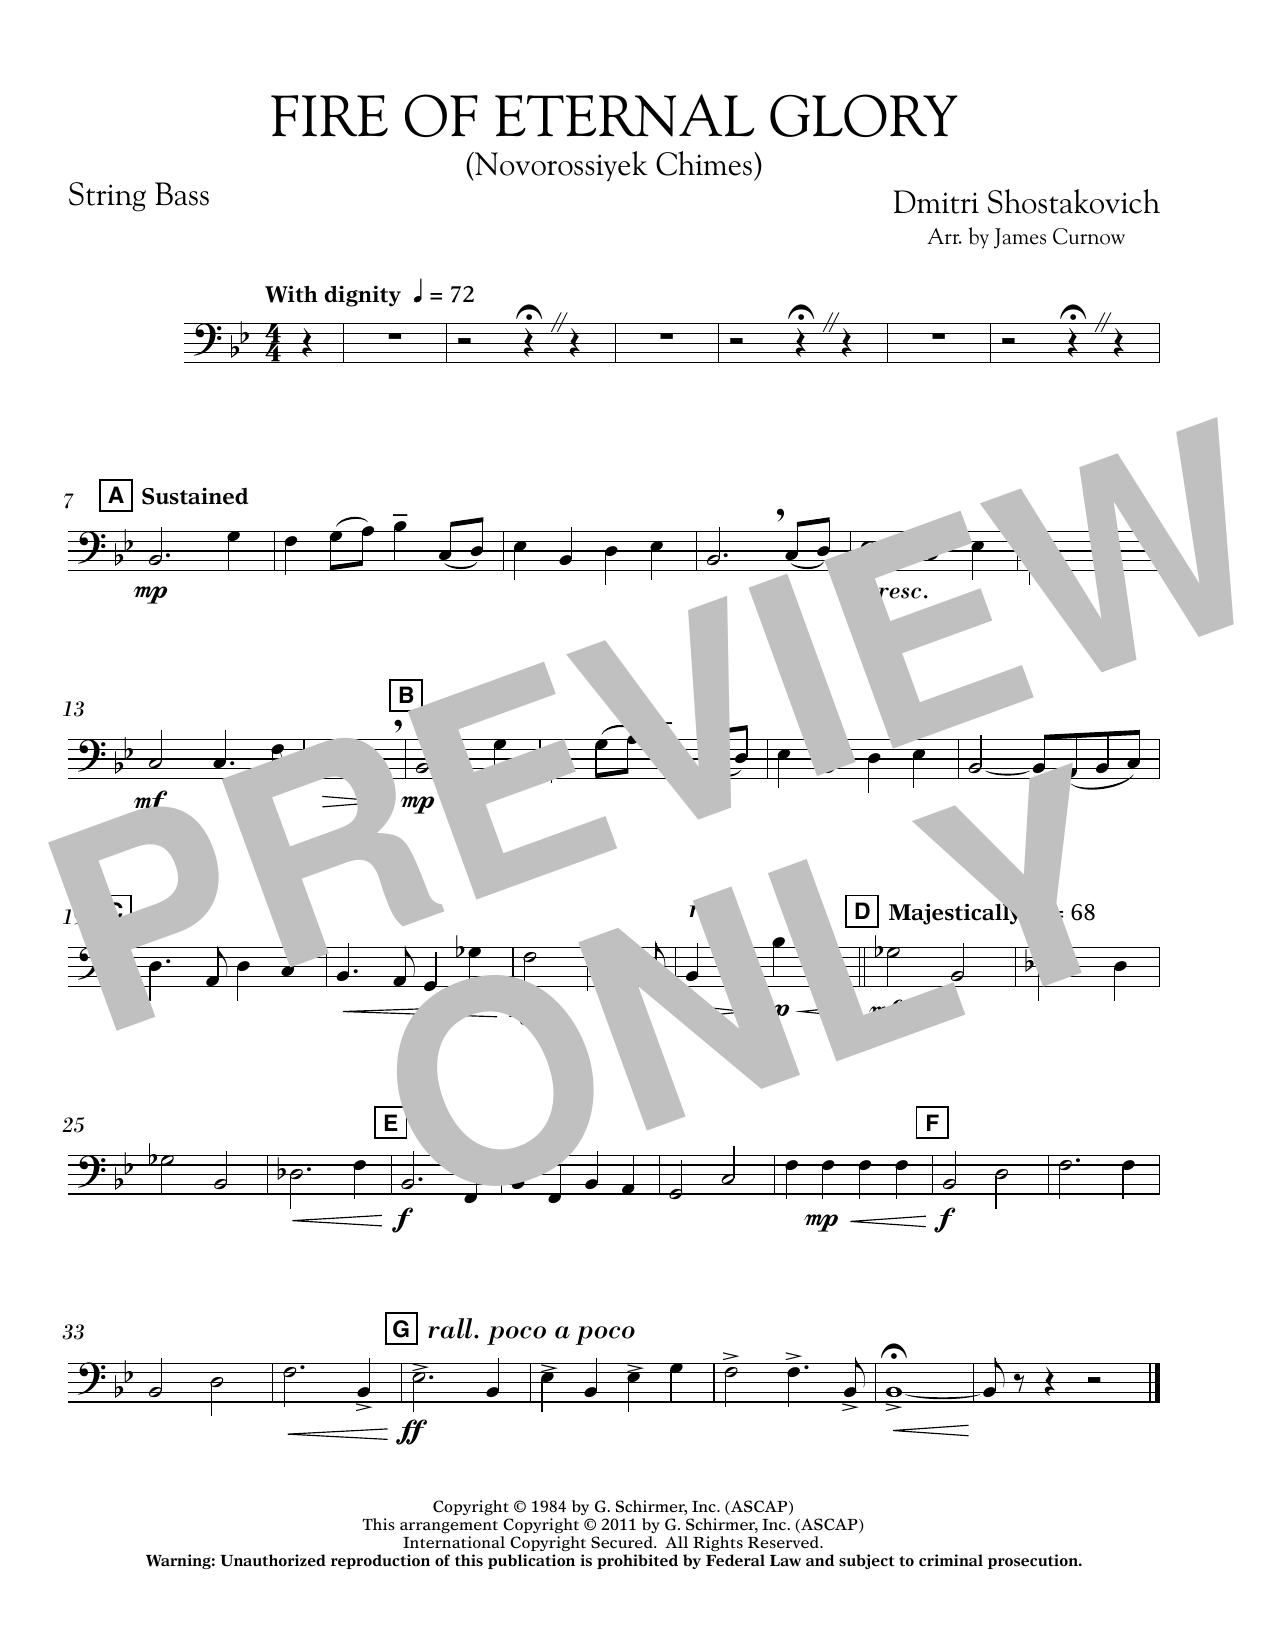 James Curnow Fire of Eternal Glory (Novorossiyek Chimes) - String Bass sheet music notes and chords. Download Printable PDF.